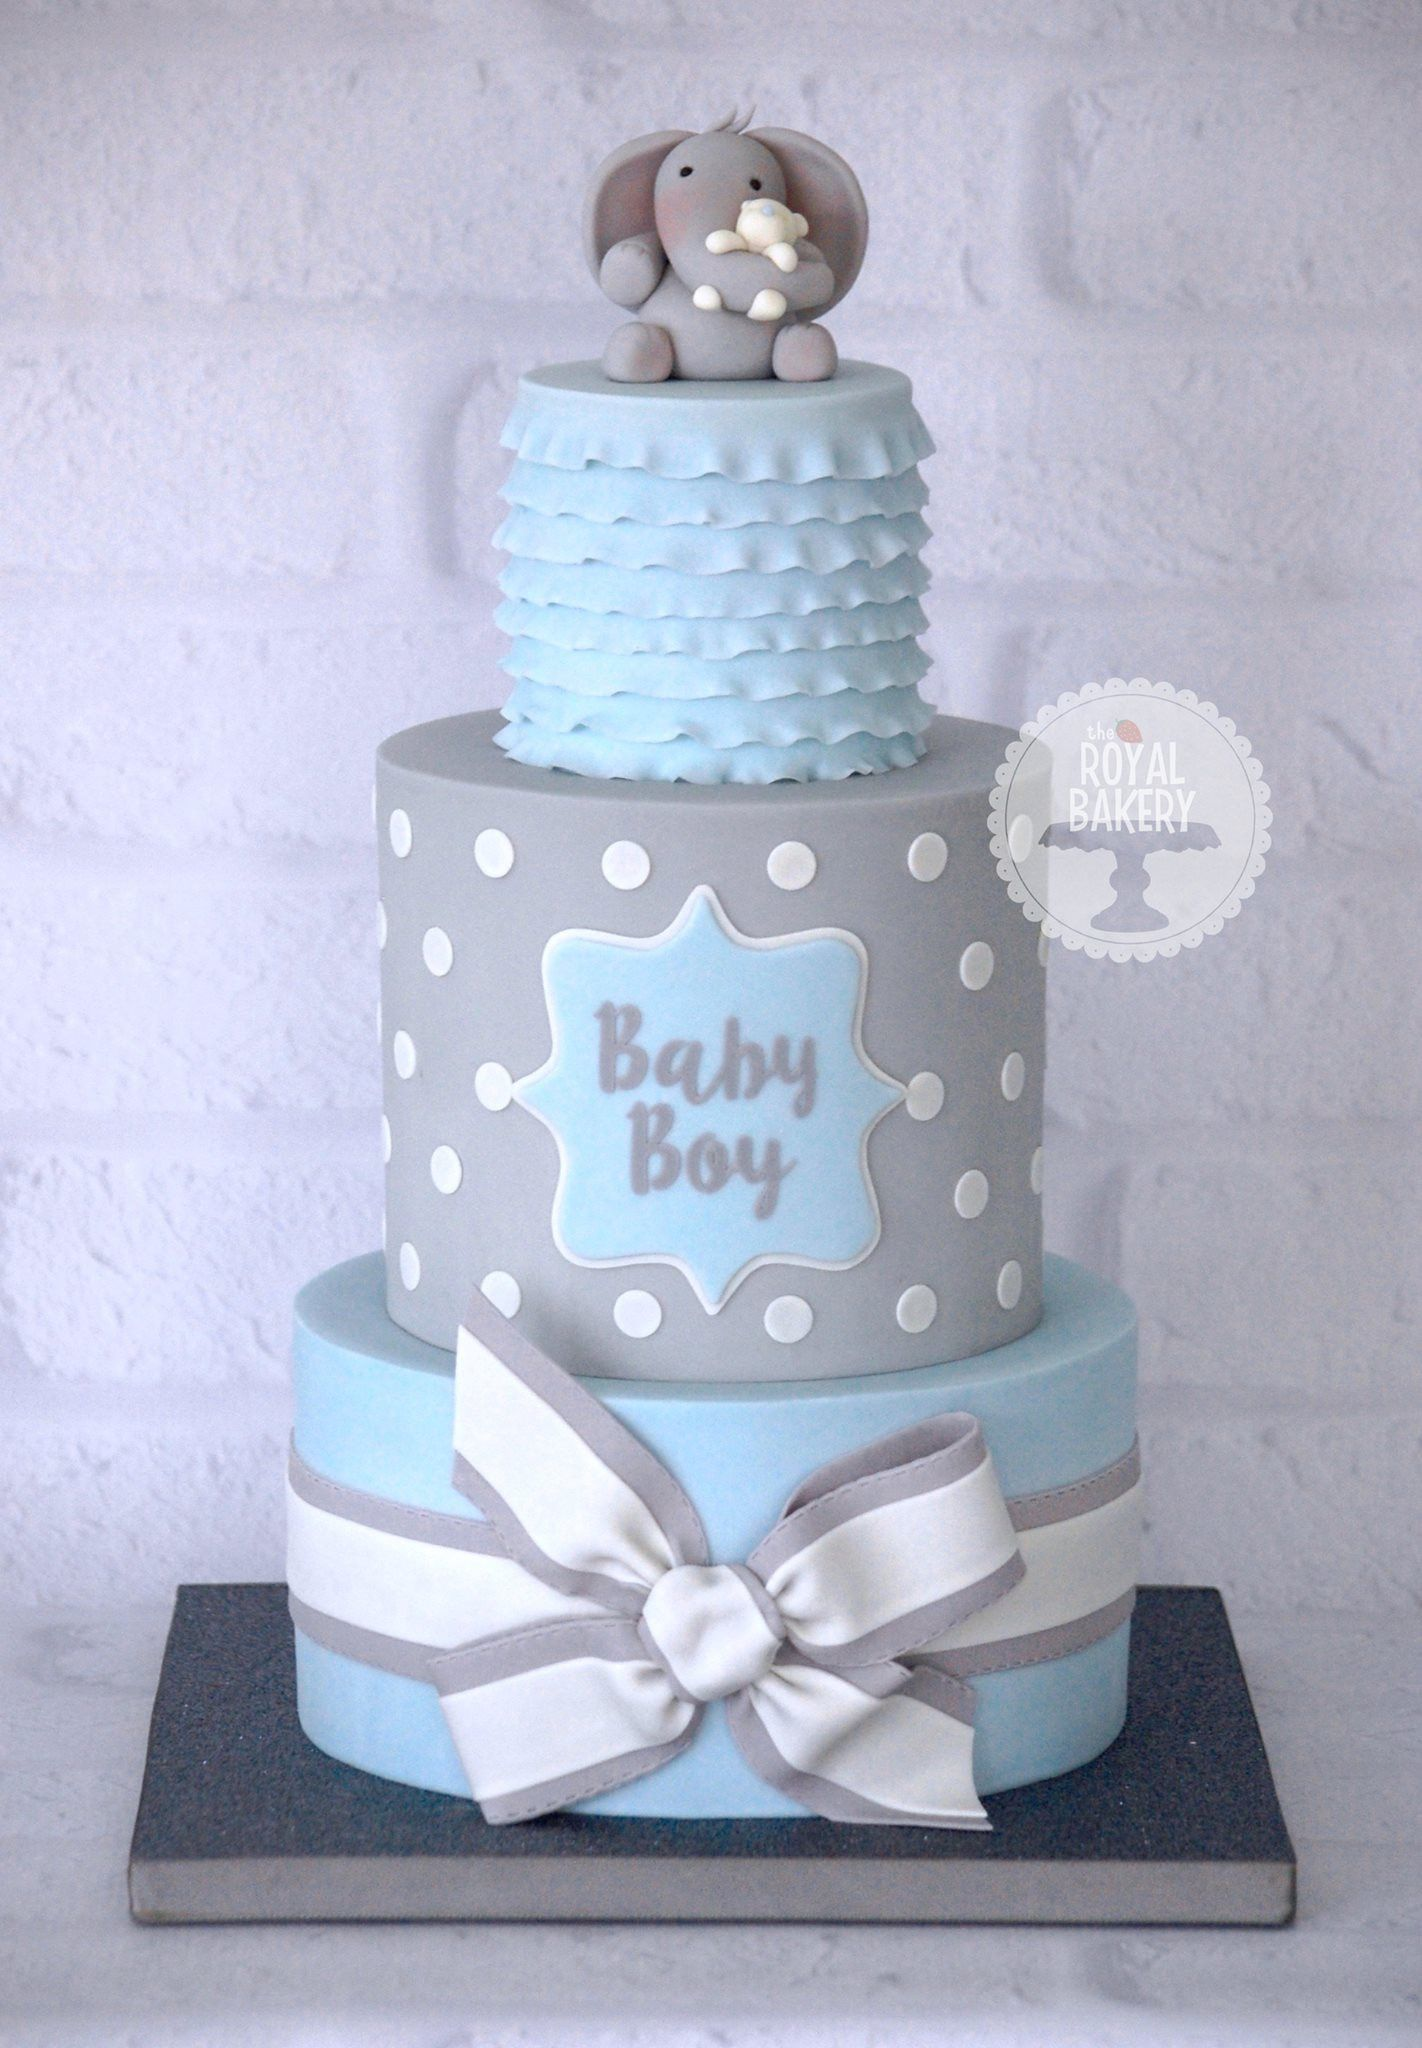 ljcbczp ideas elephant excellent baby for shower great blogbeen sorepointrecords decorations lovely boy